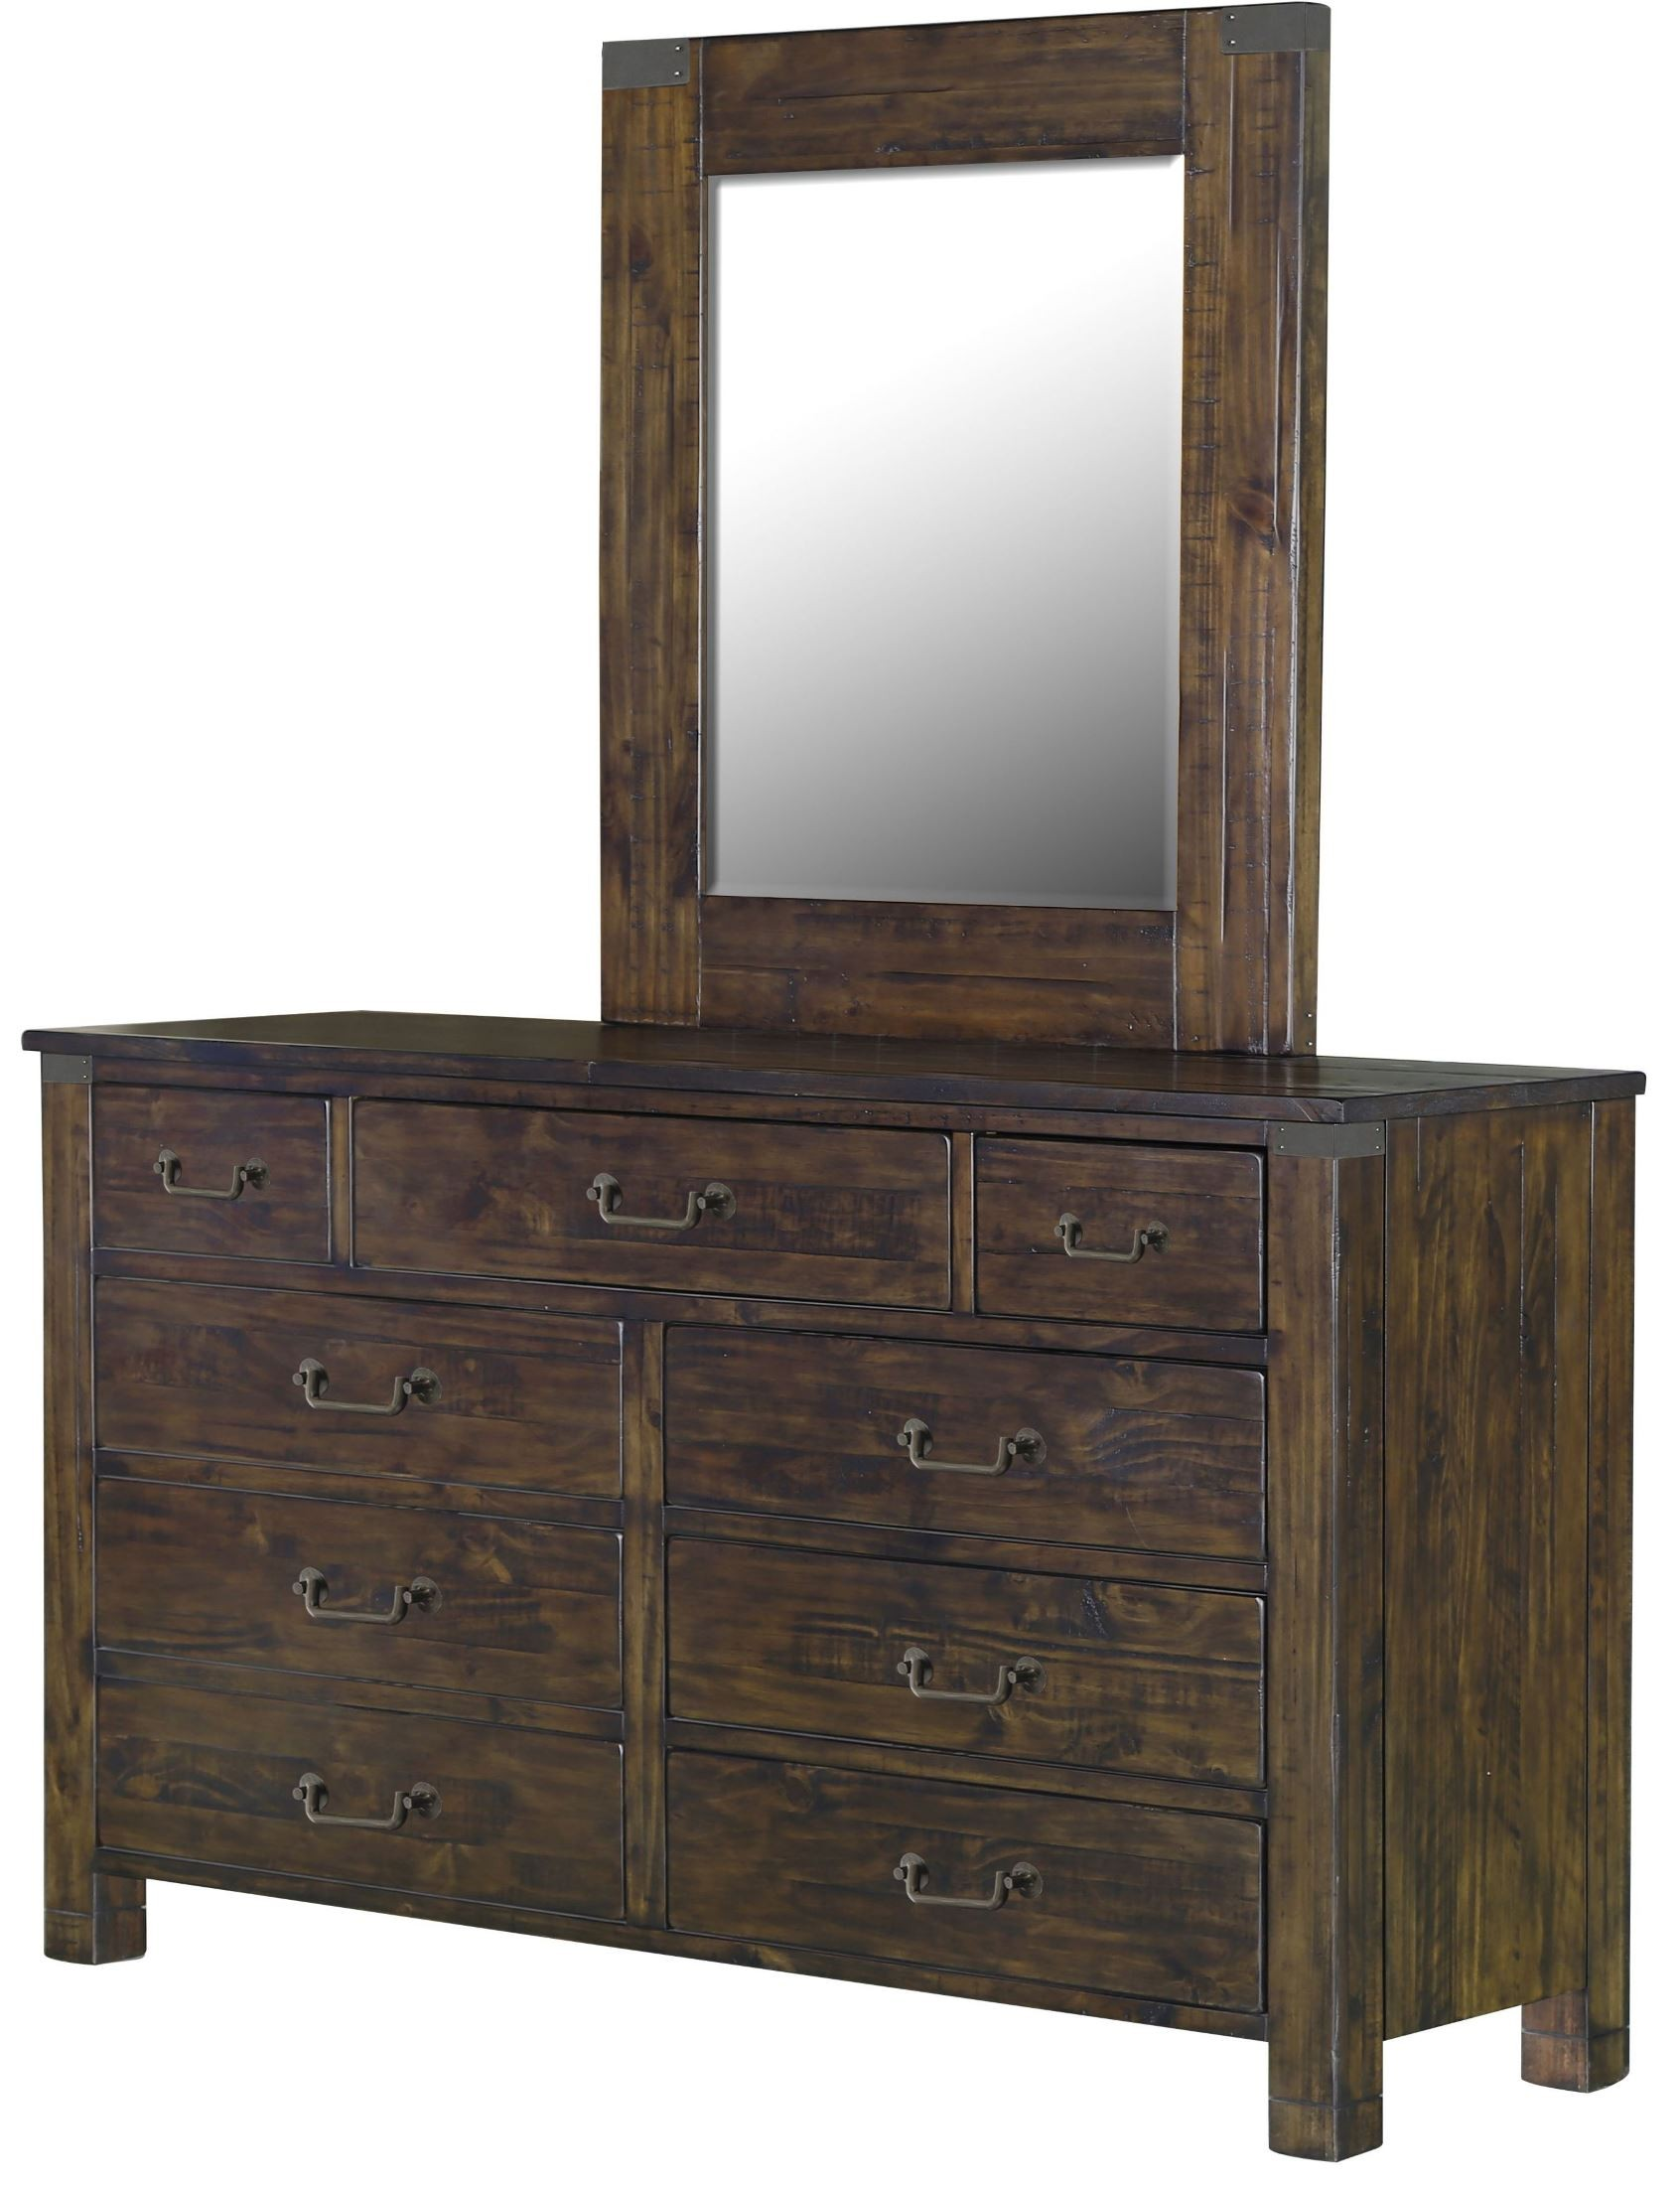 Pine Hill Rustic Pine Panel Bedroom Set from Magnussen Home B3561